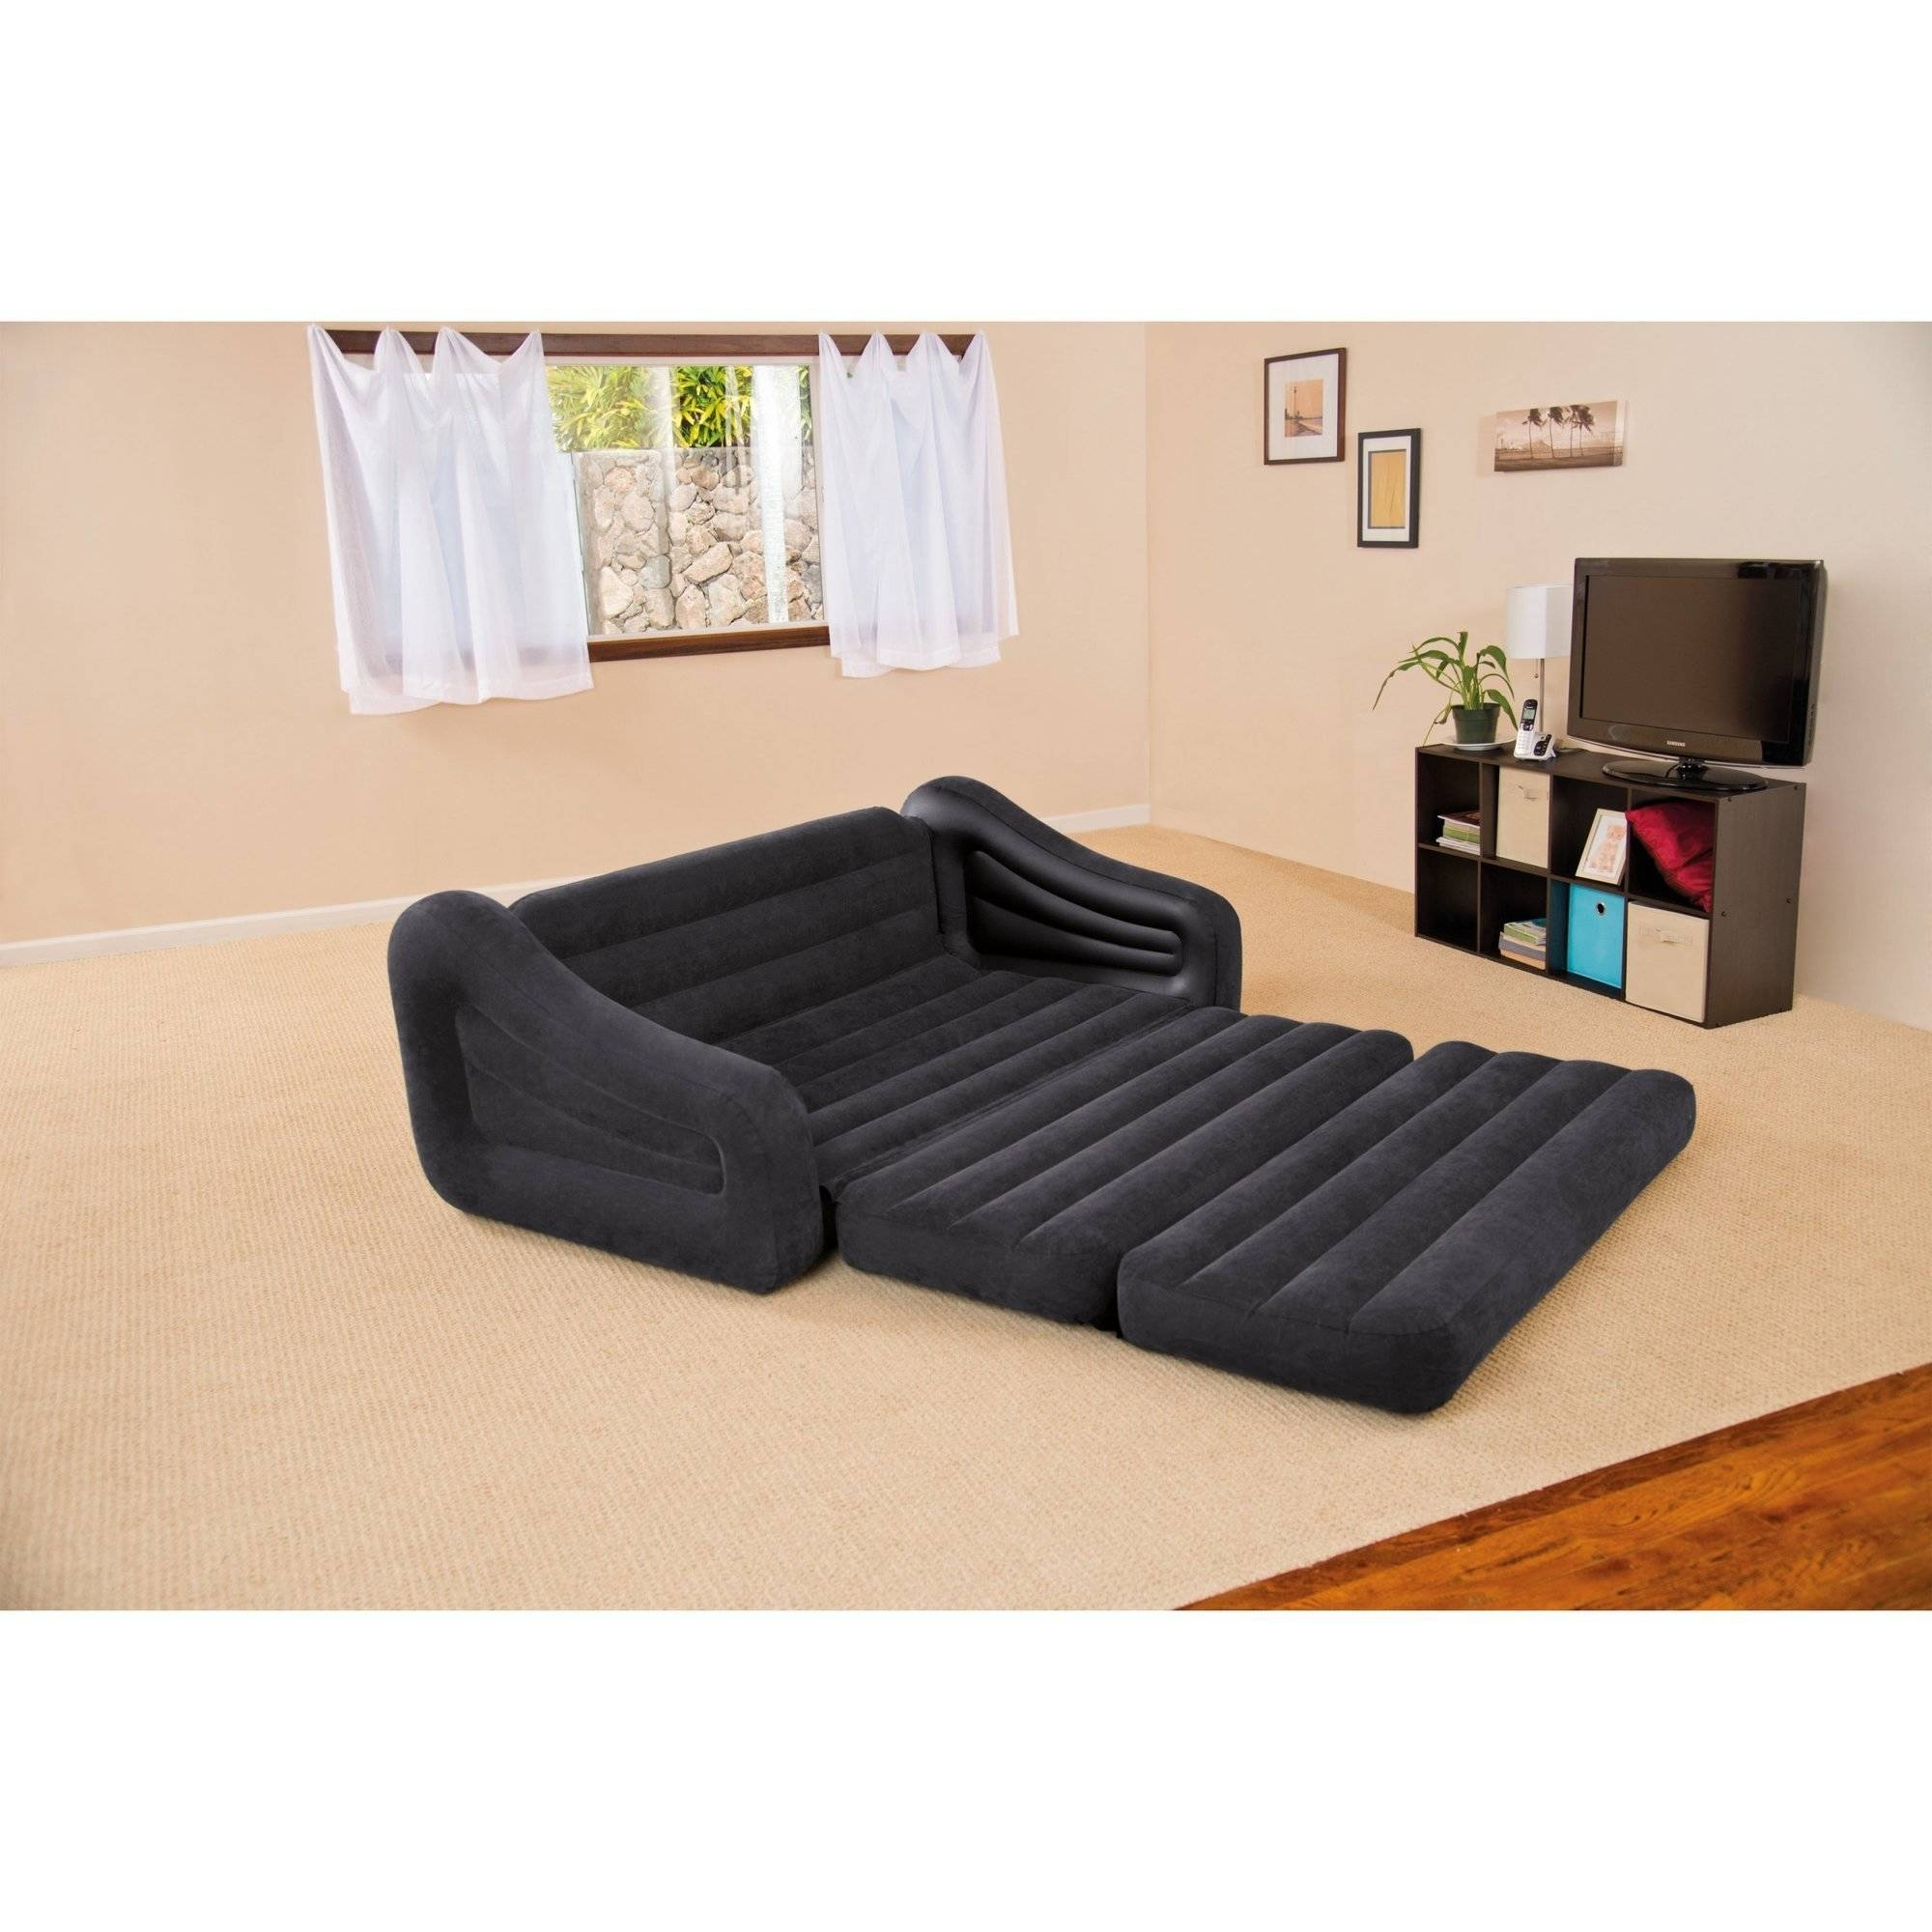 Intex Queen Inflatable Pull Out Sofa Bed - Walmart in Intex Air Couches (Image 14 of 15)